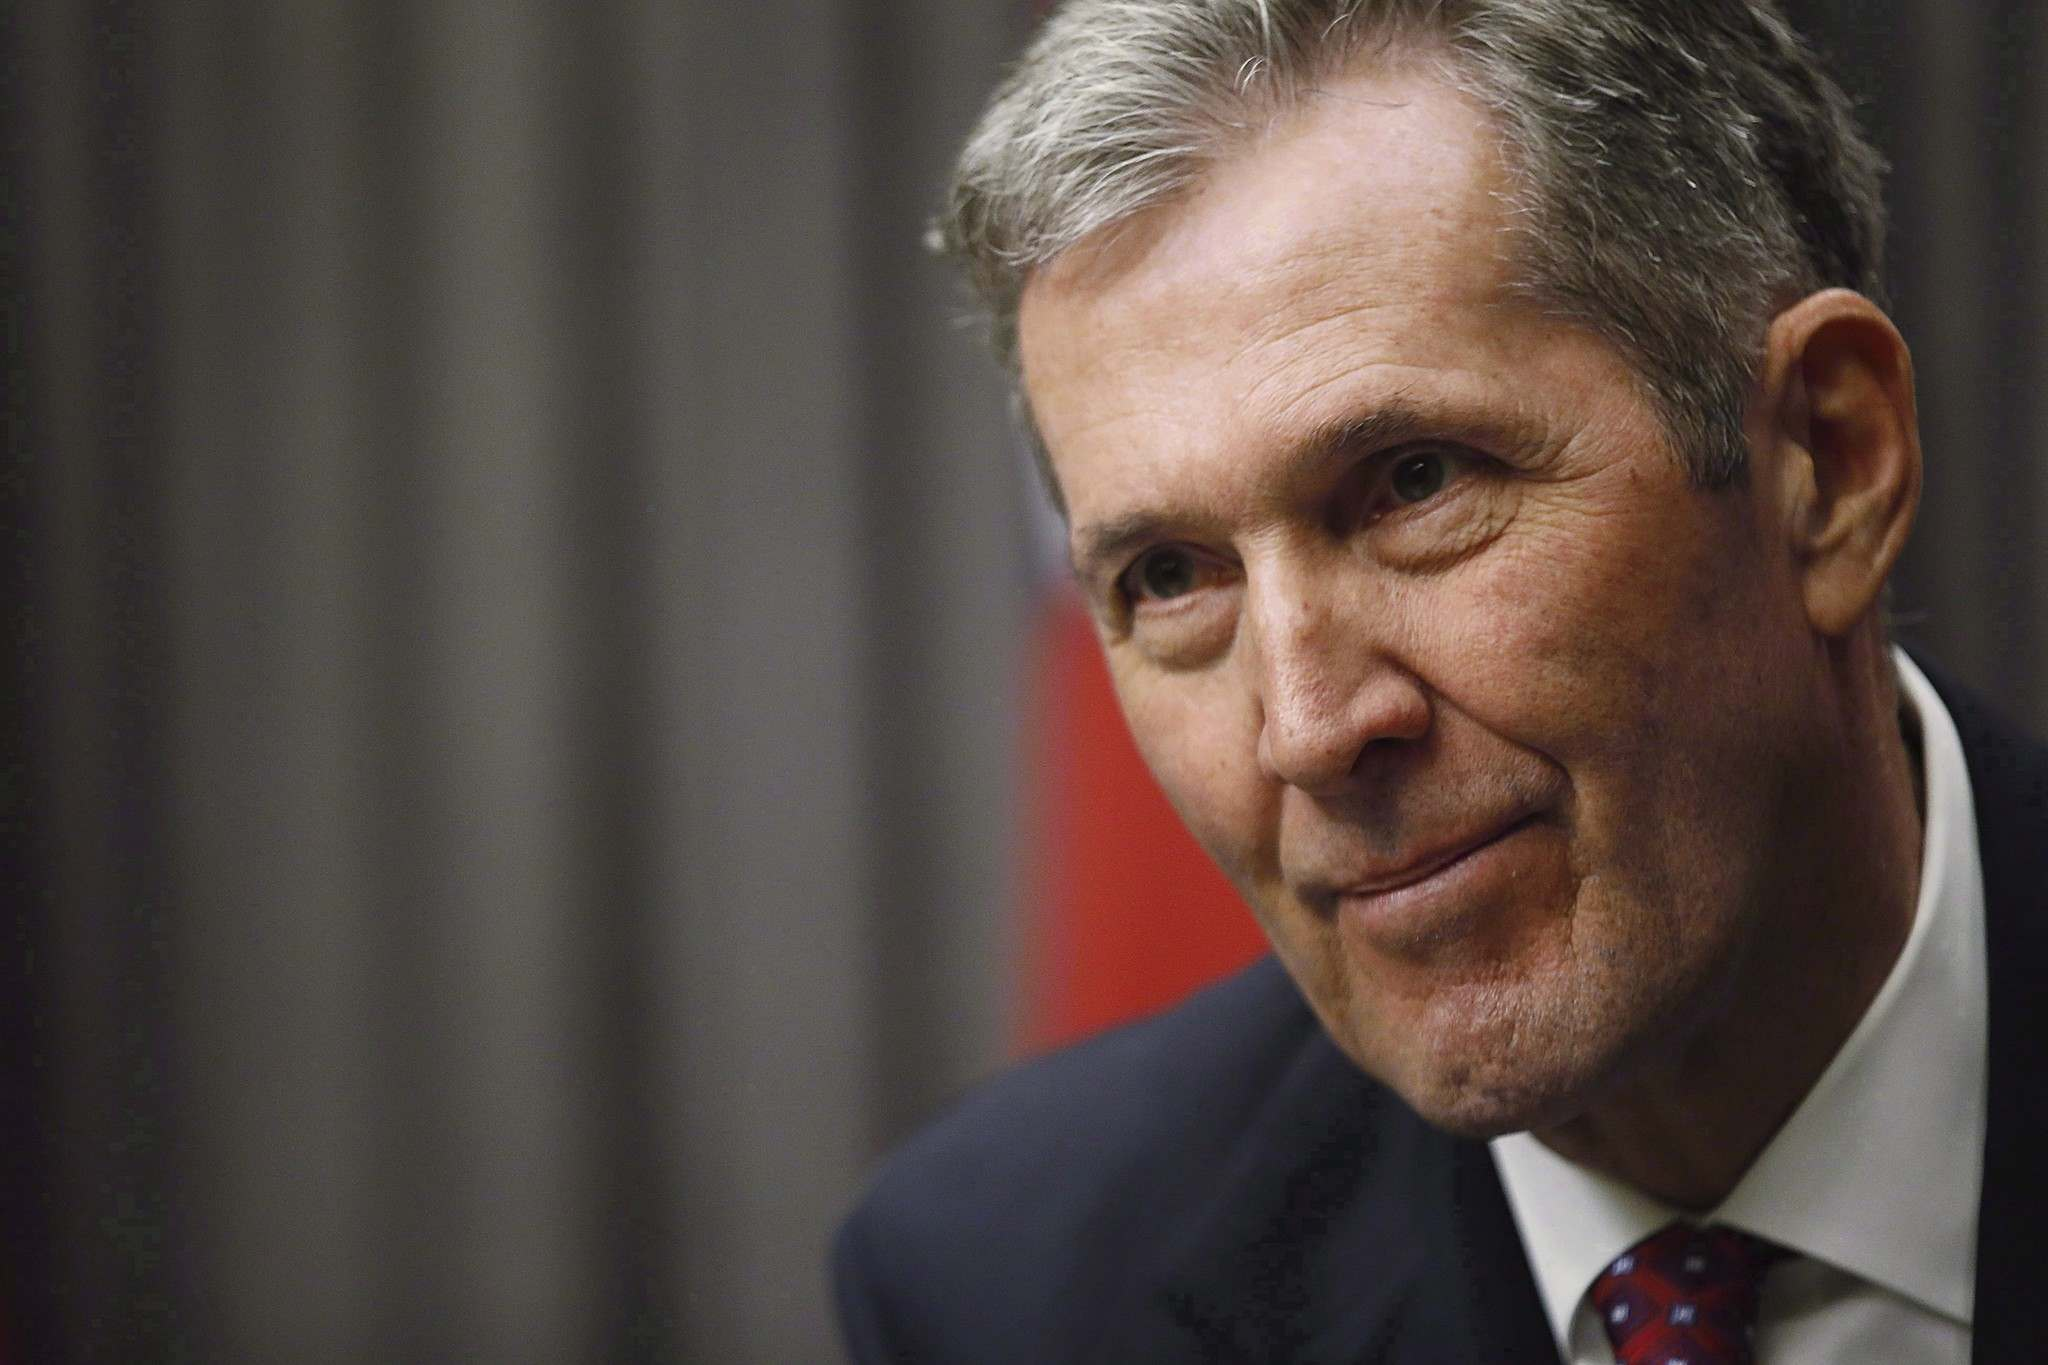 """They're attempting to do to me and my government exactly what they're now trying to do the Jody Wilson-Raybould, and I don't think that's appropriate,"" said Pallister to reporters over the weekend."